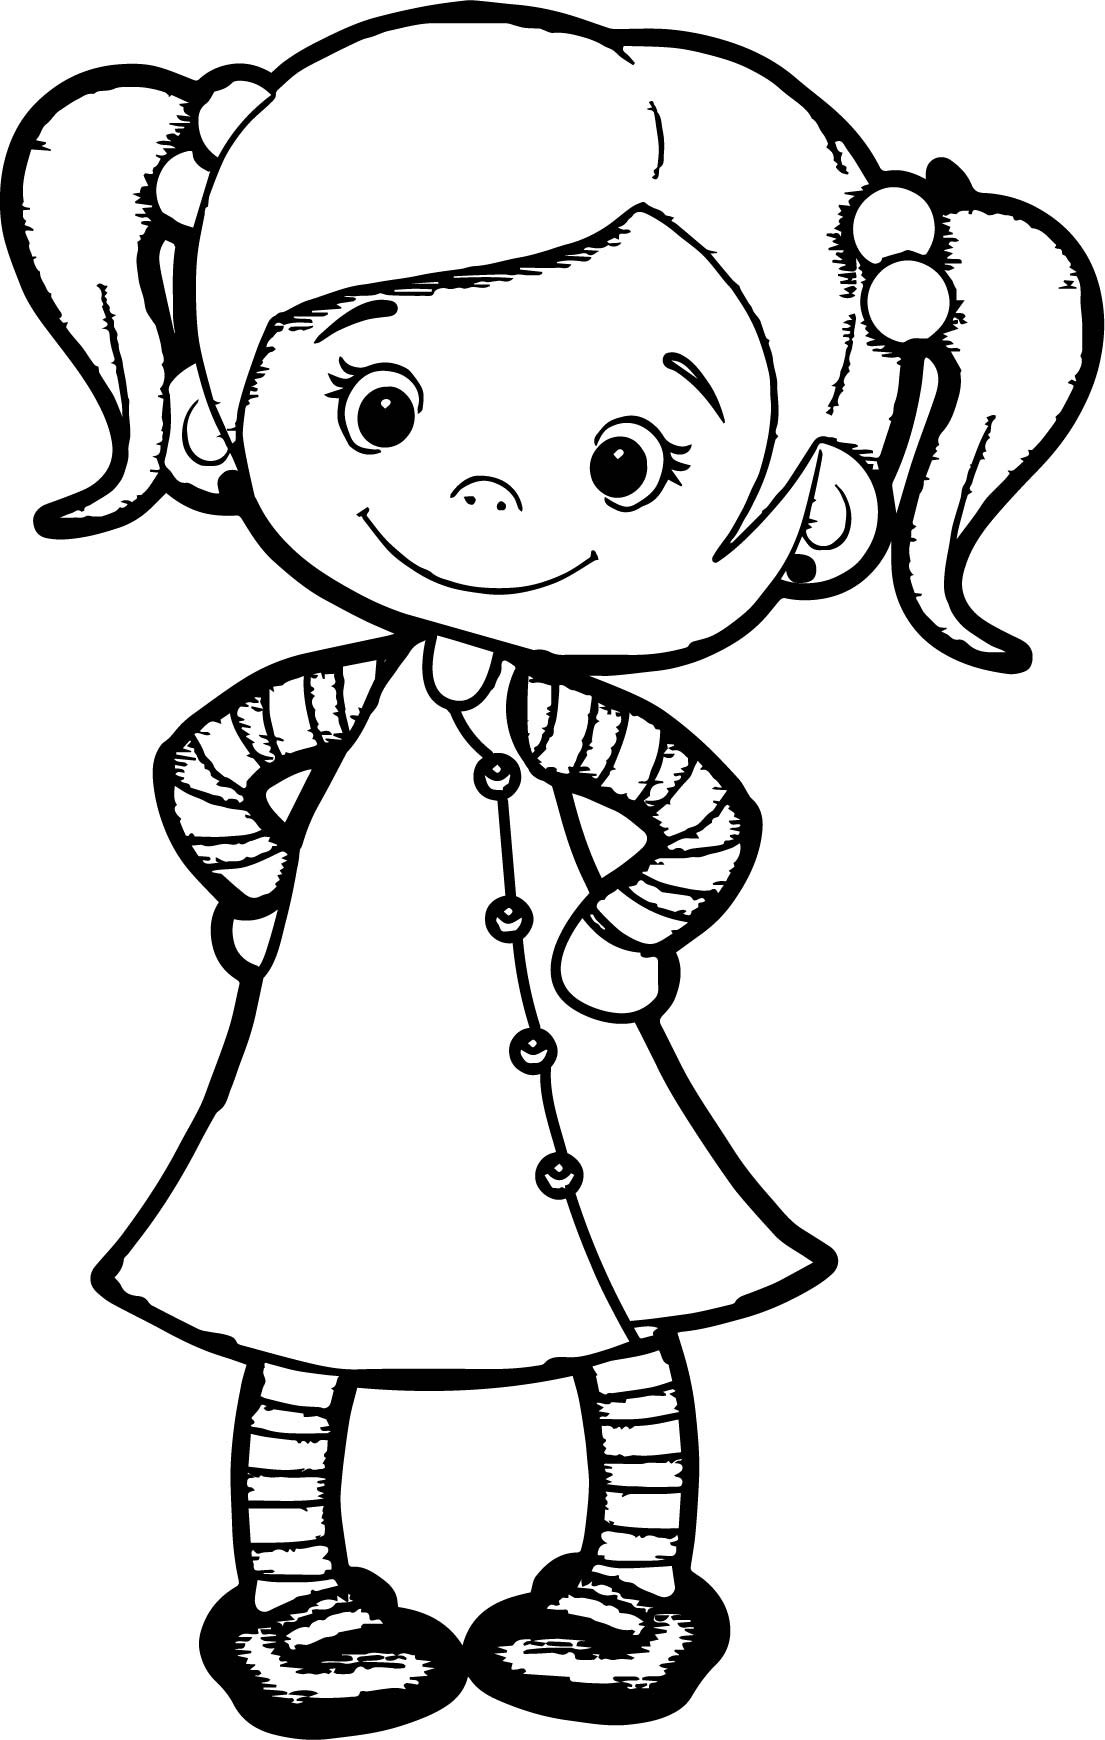 Cute Kawaii Coloring Pages At Getdrawings Com Free For Personal